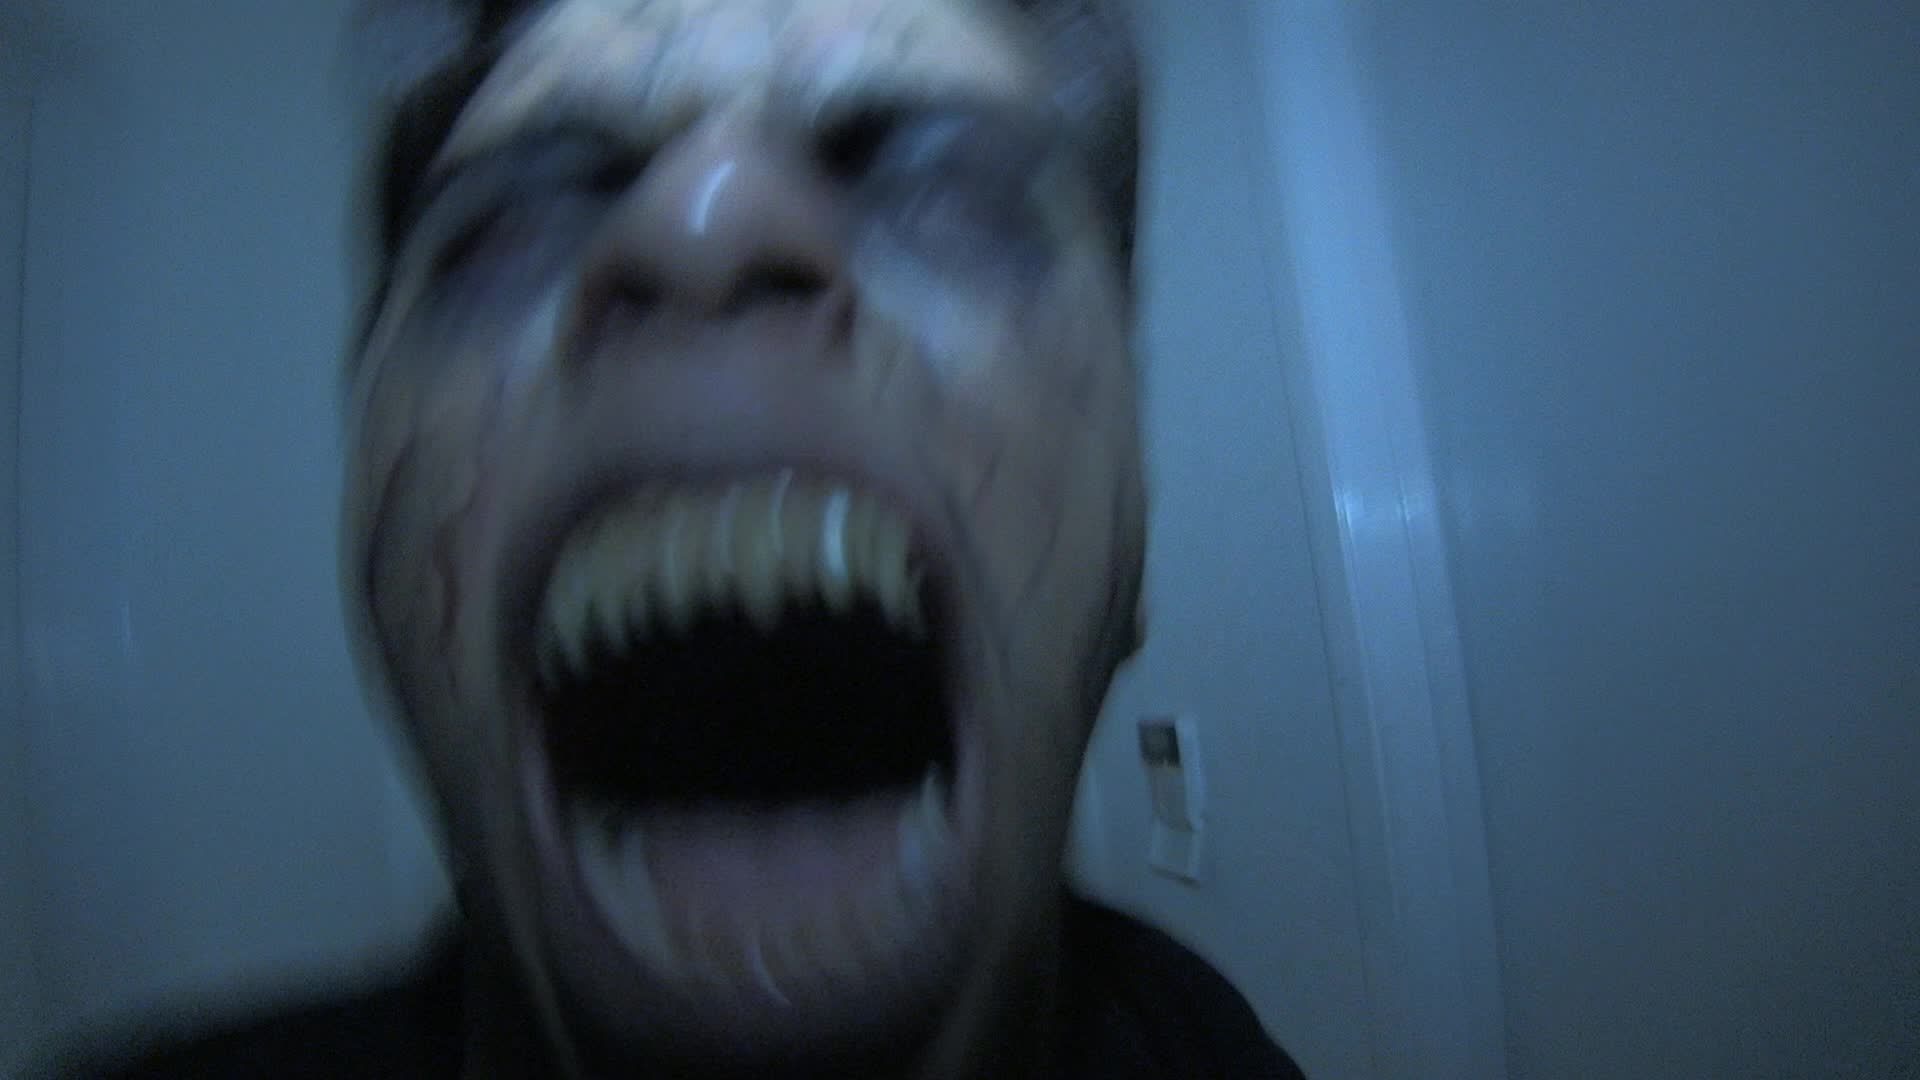 Movie Review Paranormal What Does The Paranormal Activity Demon Look Like